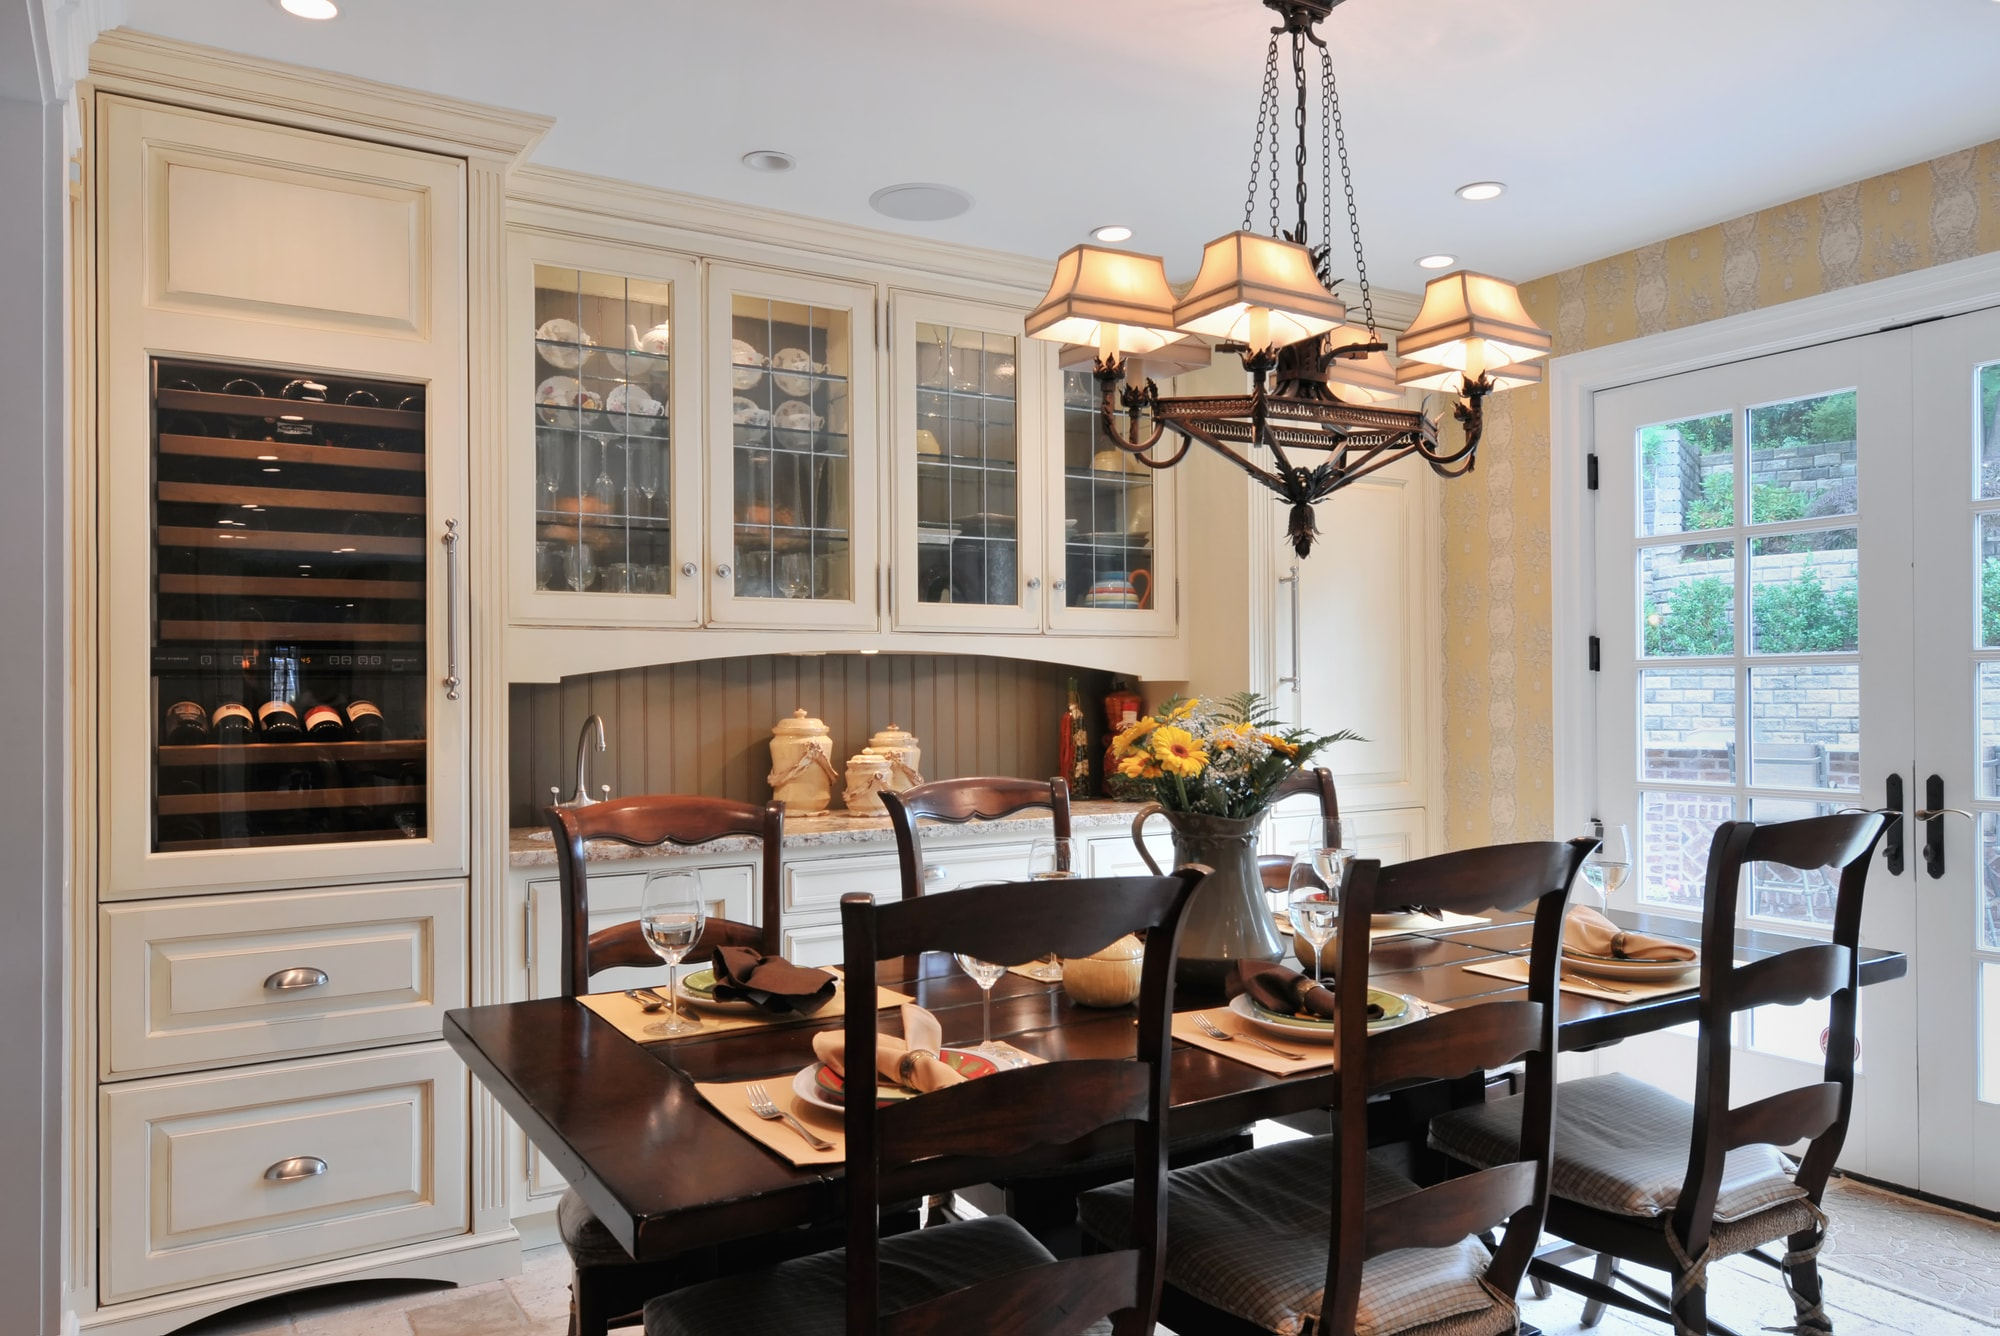 Traditional style kitchen with spacious upper kitchen cabinets